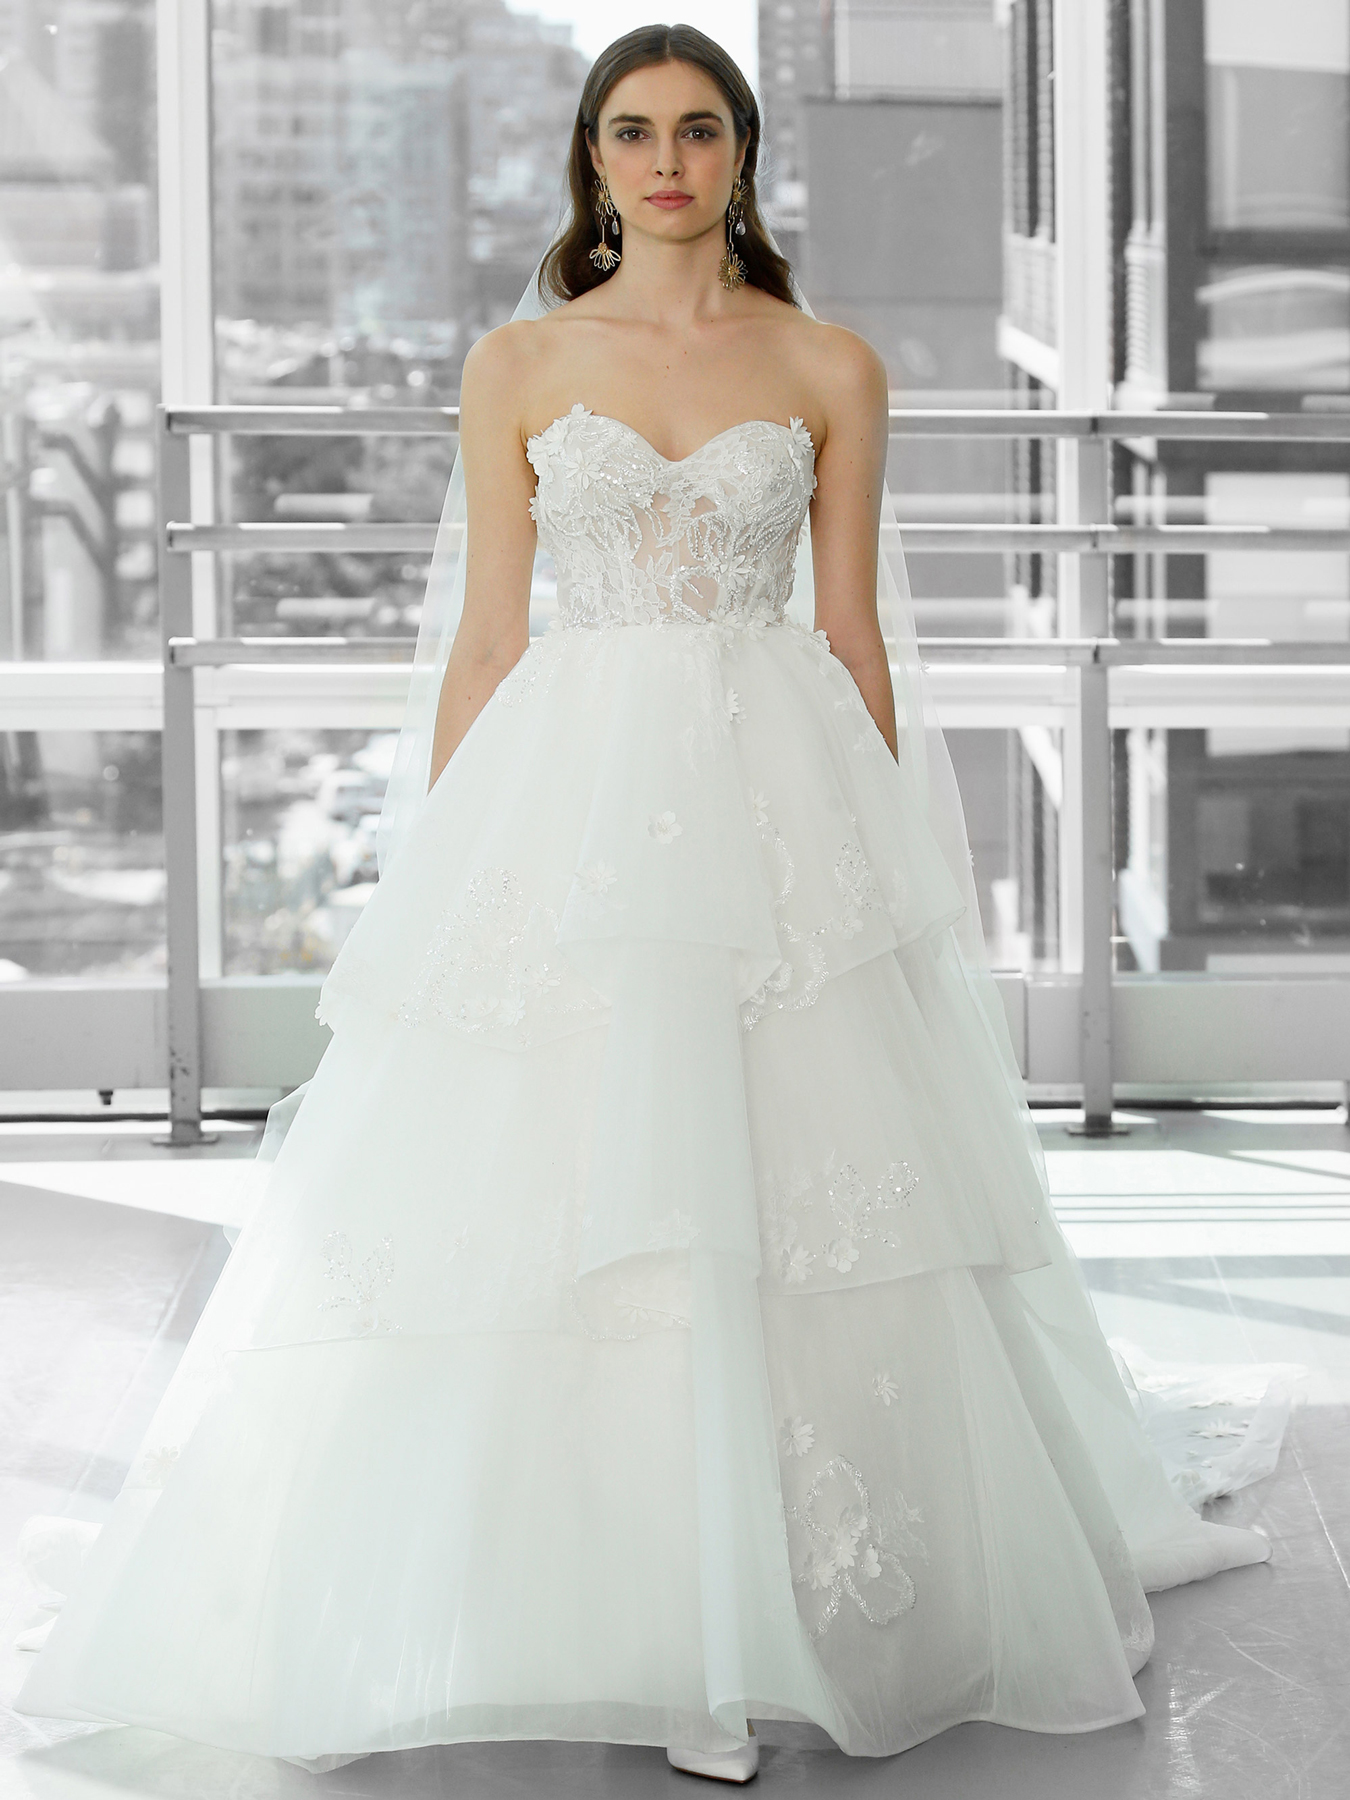 Justin Alexander Signature strapless 3d flowers and beading tiered ball gown skirt wedding dress fall 2020